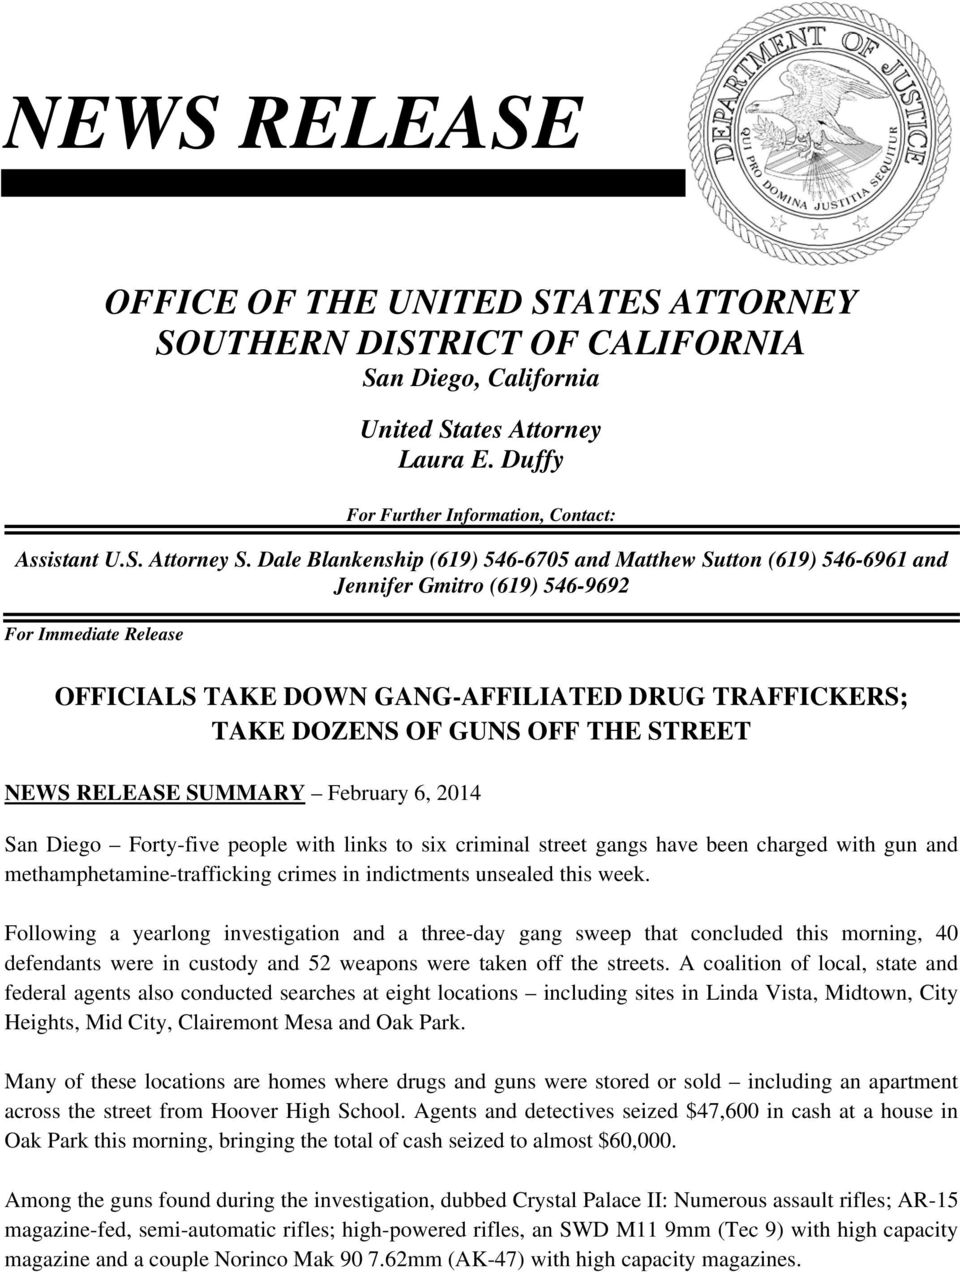 OFF THE STREET NEWS RELEASE SUMMARY February 6, 2014 San Diego Forty-five people with links to six criminal street gangs have been charged with gun and methamphetamine-trafficking crimes in